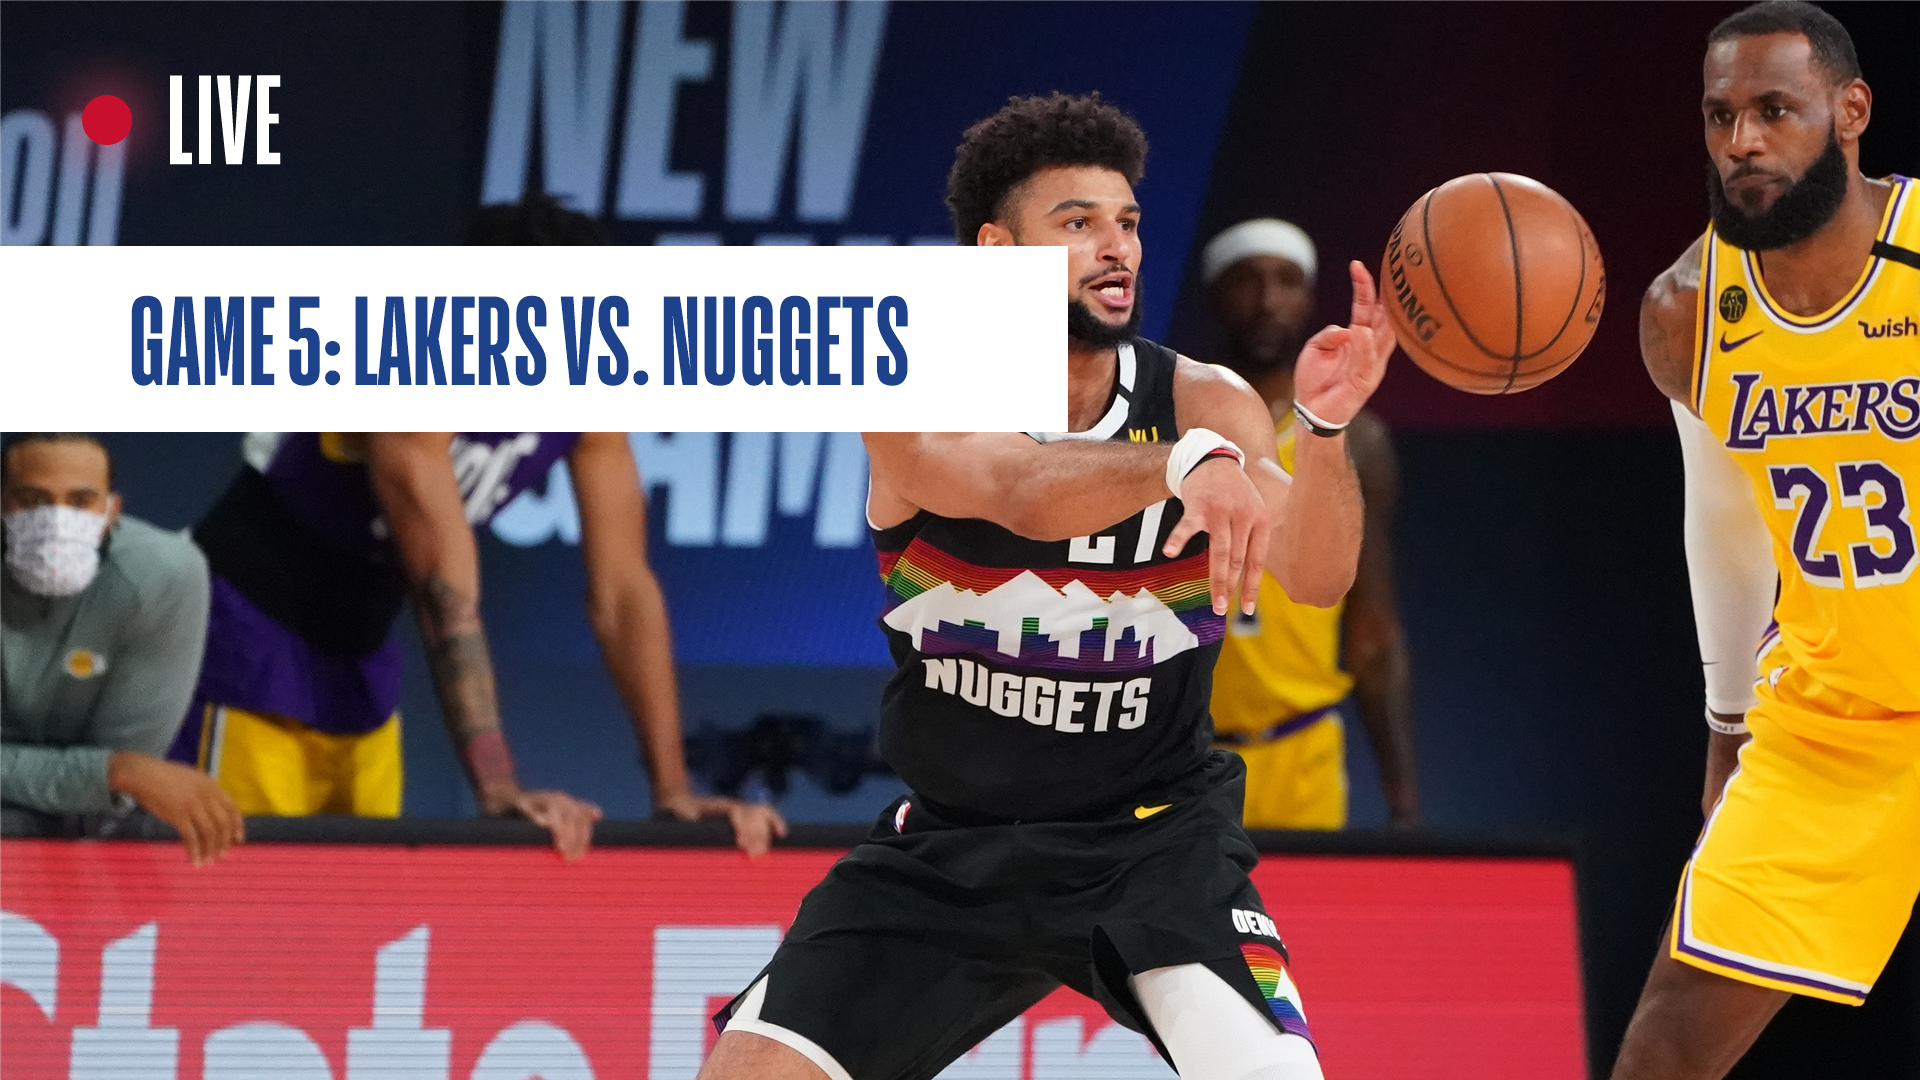 Los Angeles Lakers Vs Denver Nuggets Game 5 Score Updates News Stats And Highlights Nba Com Australia The Official Site Of The Nba